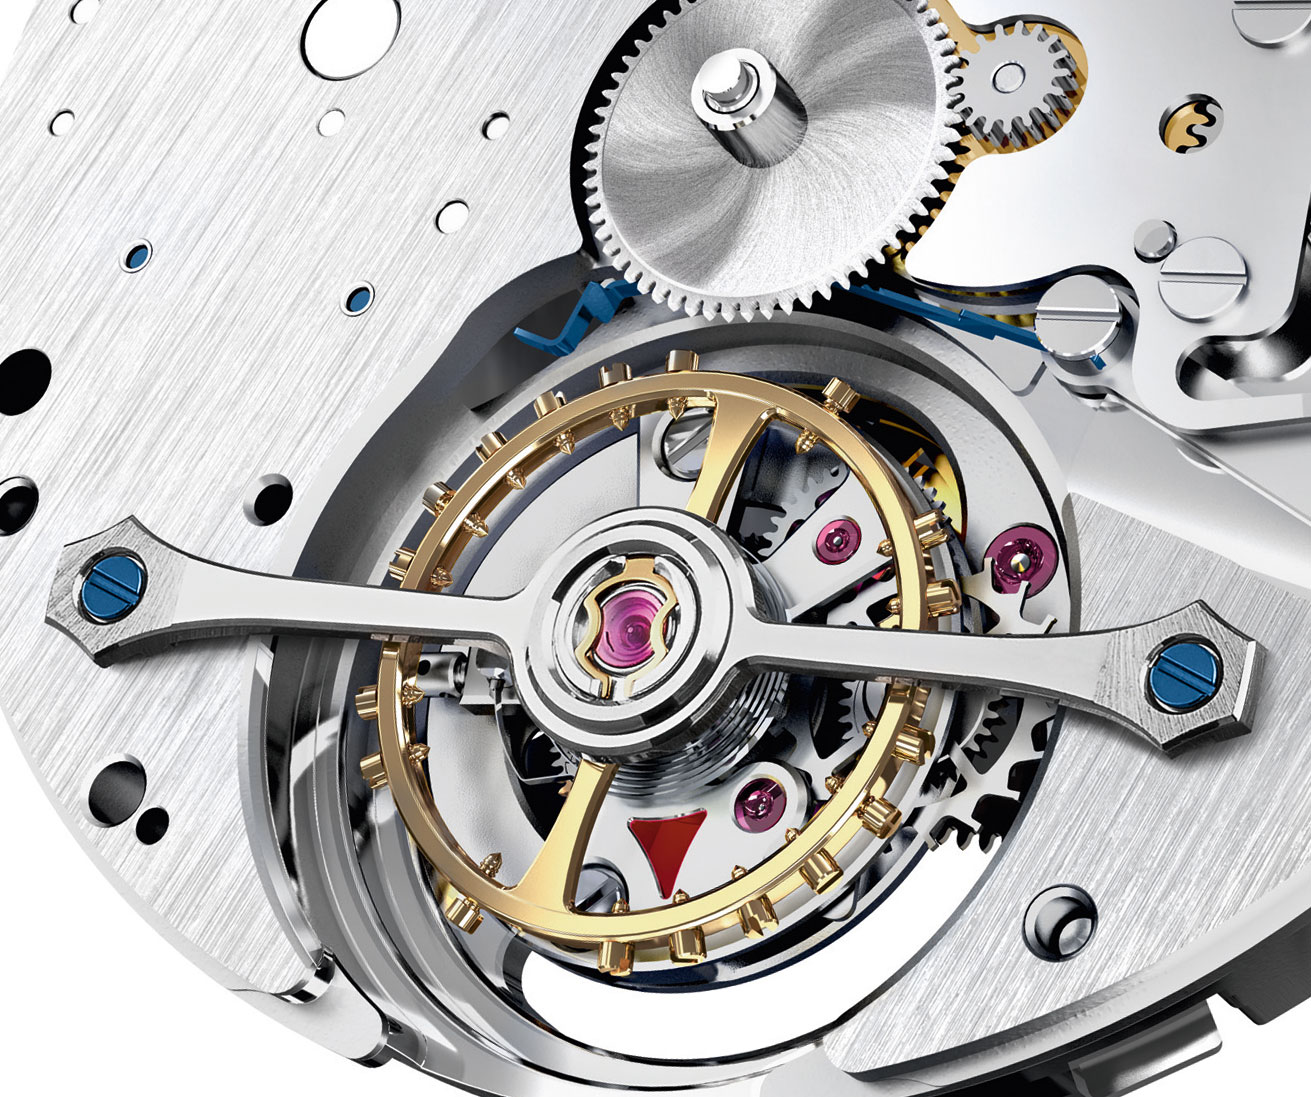 Montblanc Heritage Chronométrie Exo Tourbillon movement